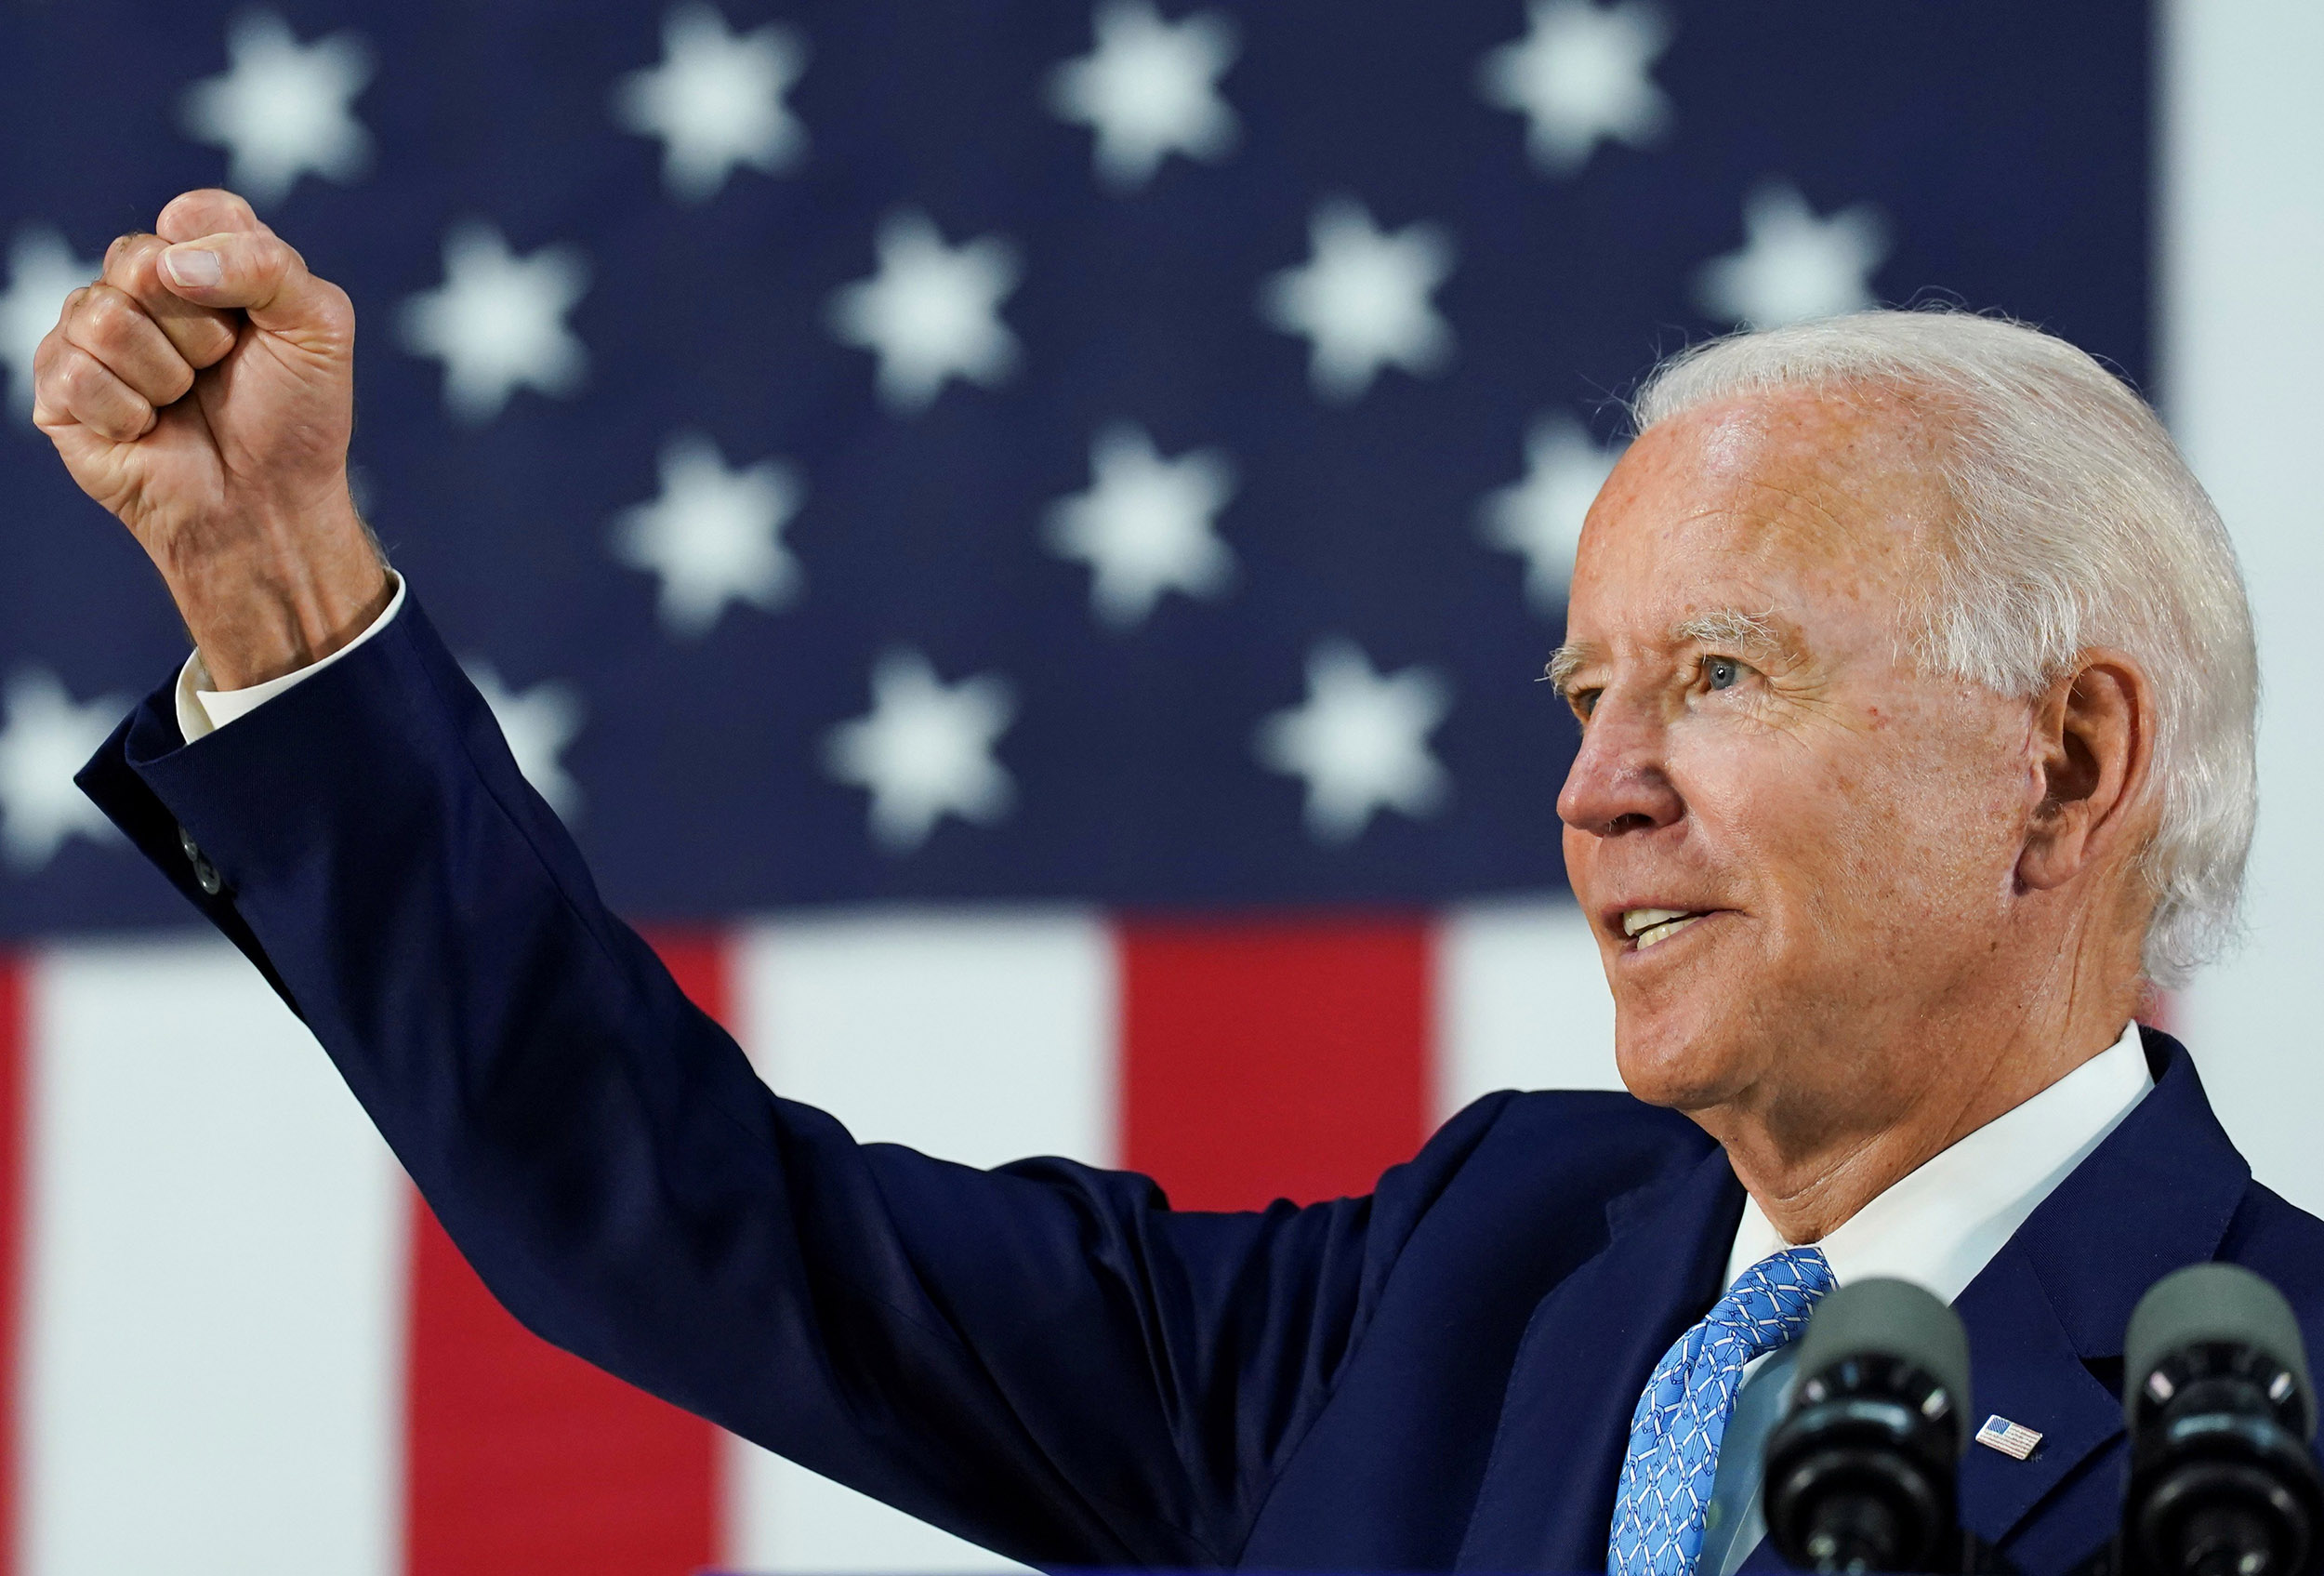 COVID-19 victims: Biden to hold candlelight ceremony on Monday